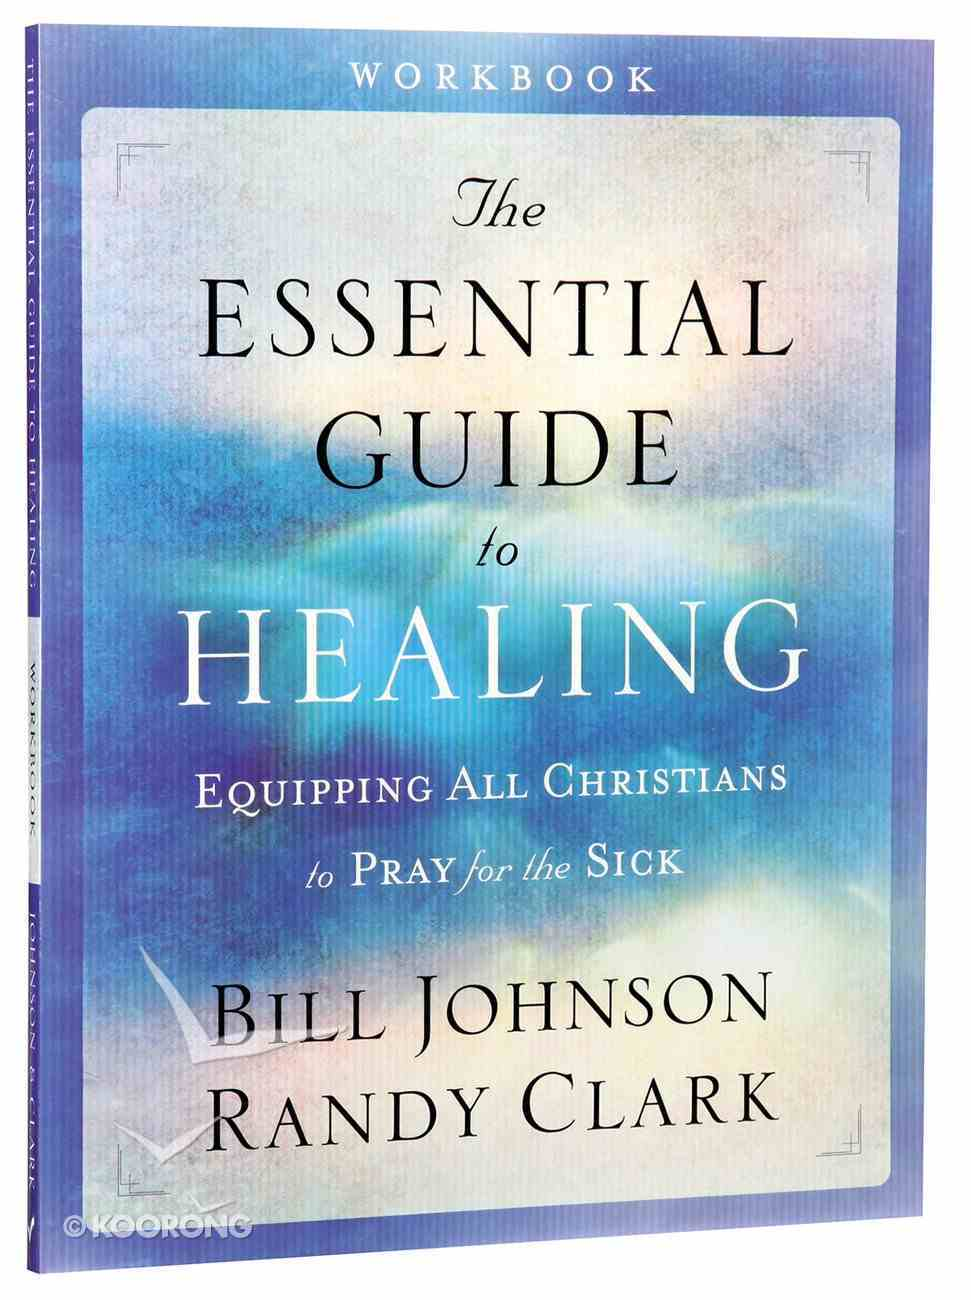 The Essential Guide to Healing (Workbook) Paperback